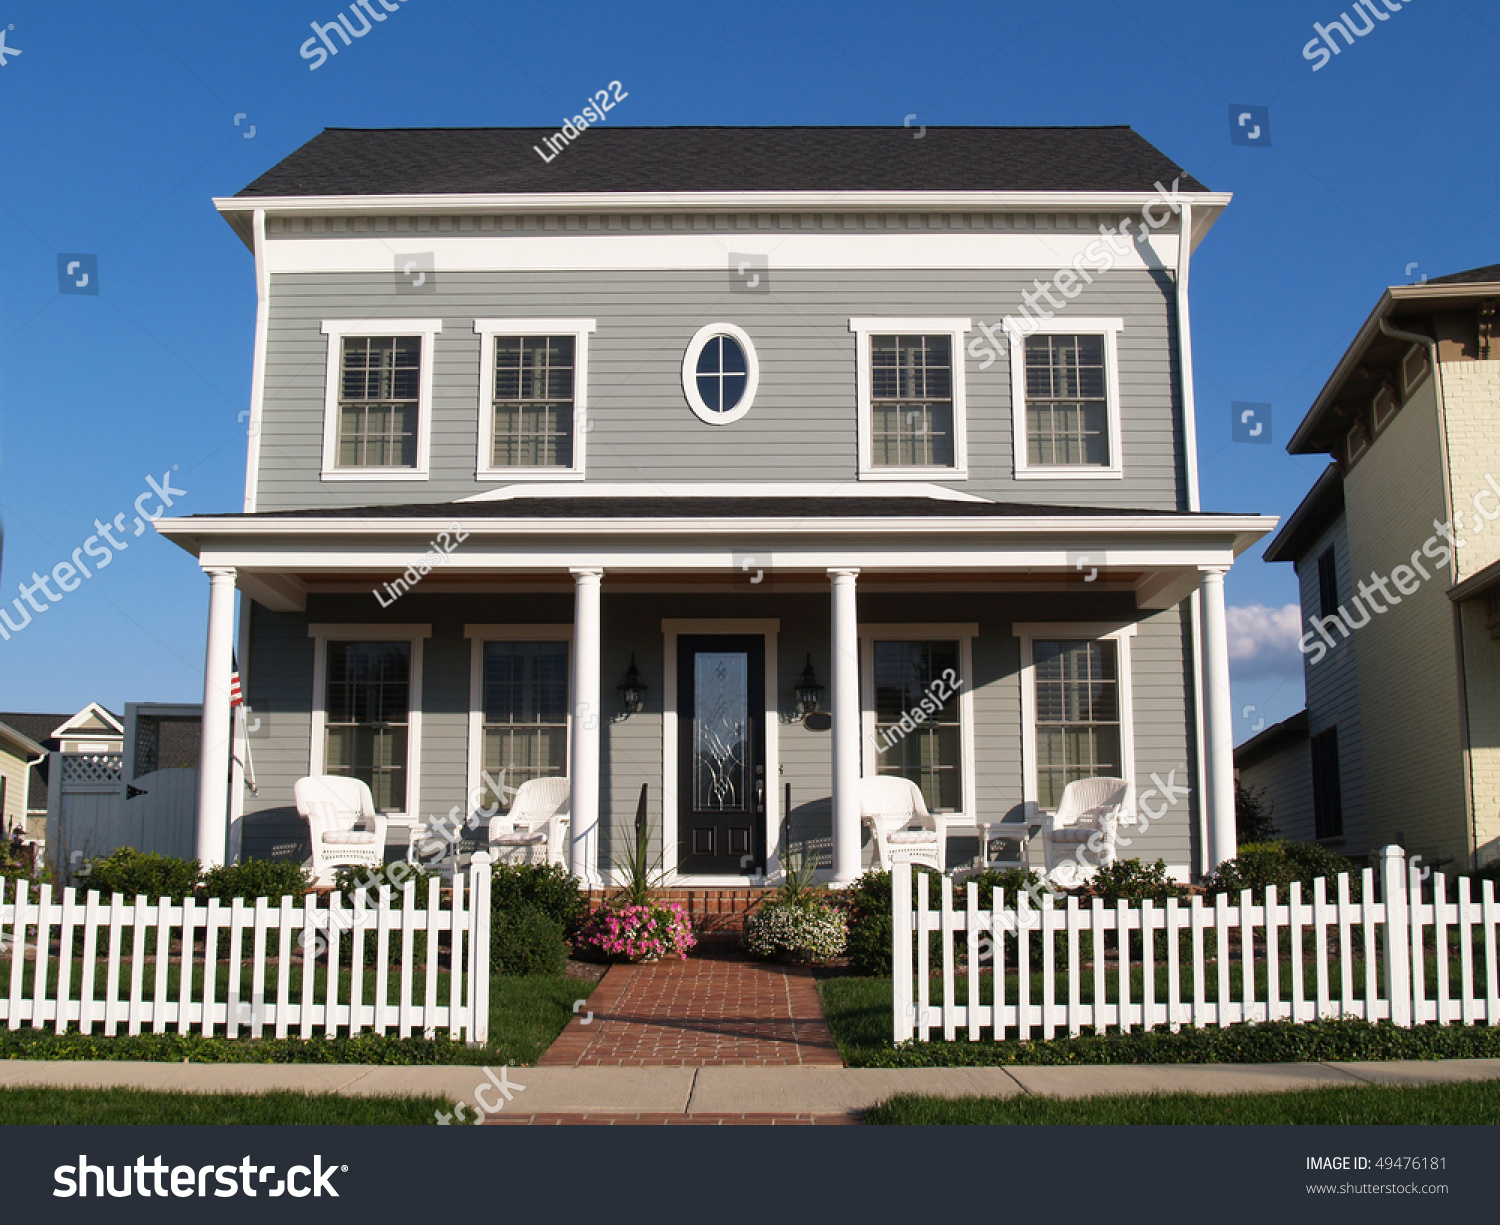 New Two Story Vinyl Home Built Stock Photo 49476181